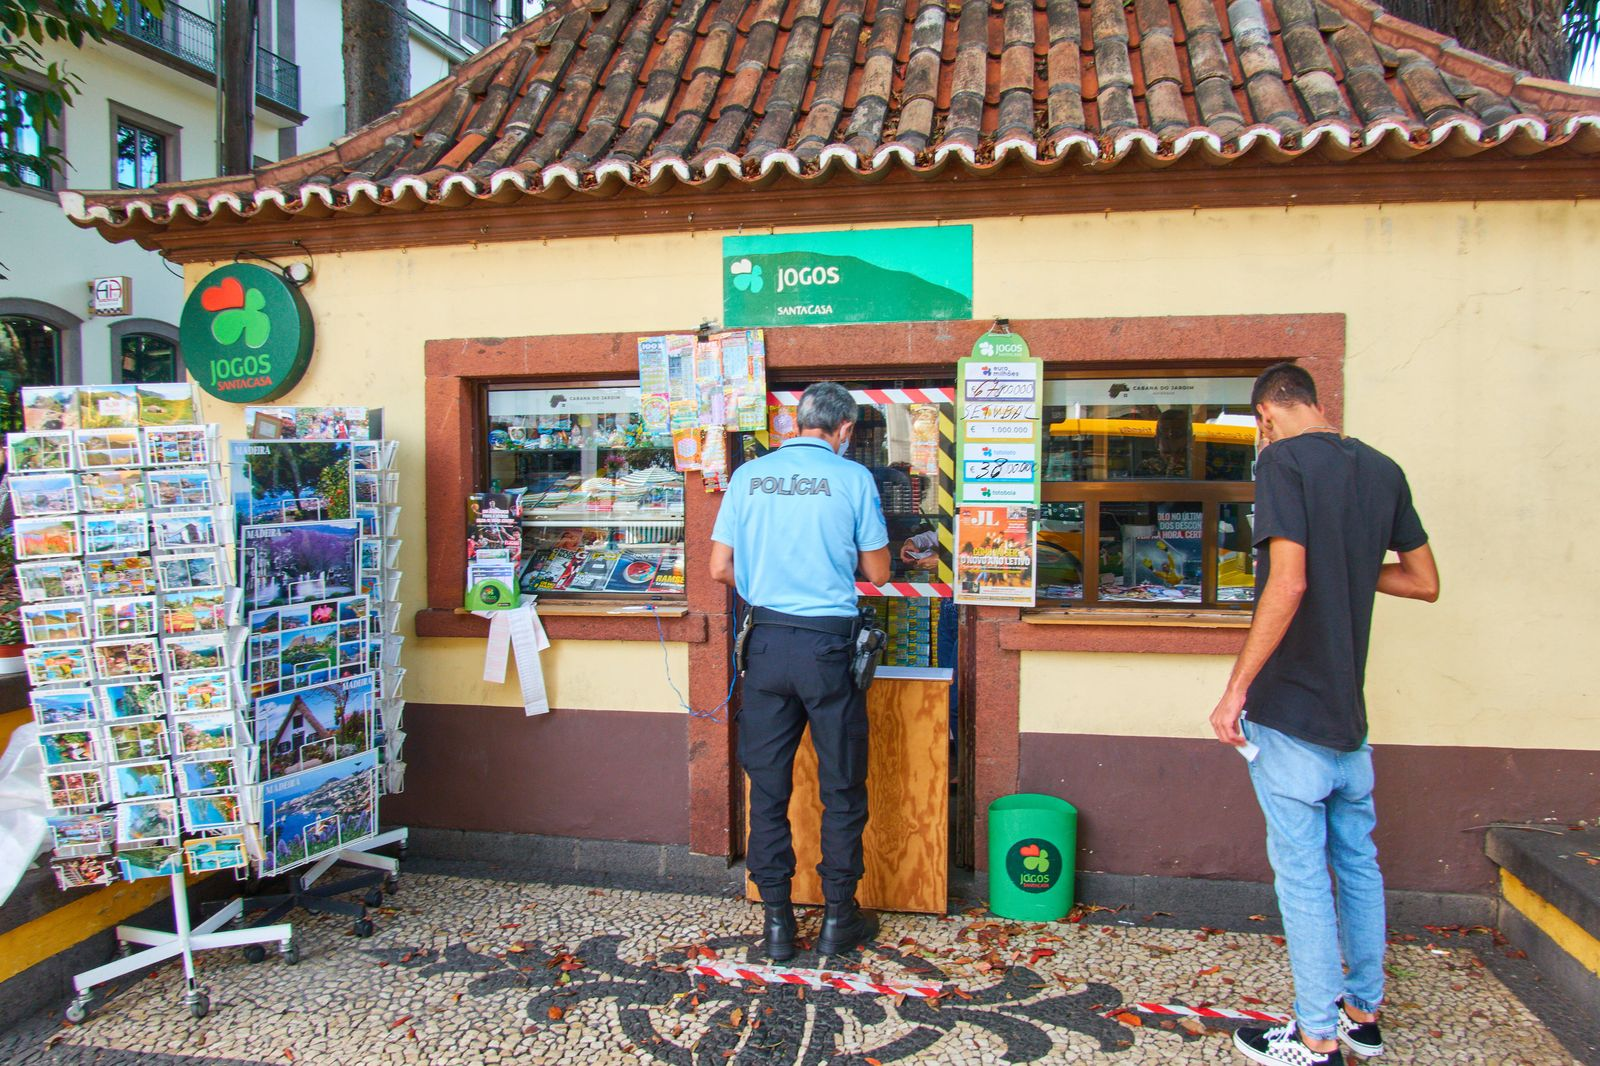 Funchal, Madeira, Portugal, 19th September, 2020. A police man is buying something at a small kiosk